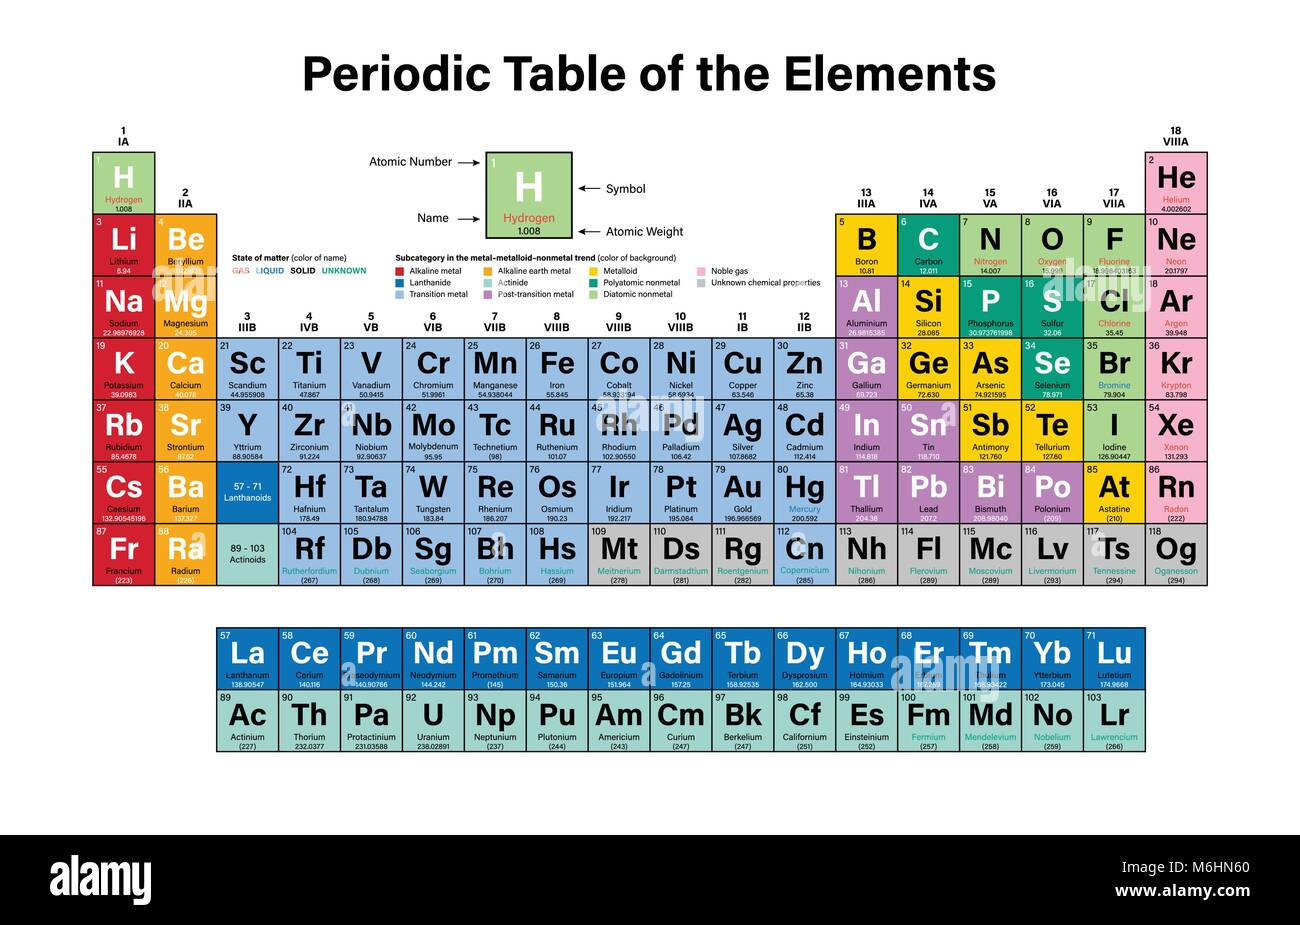 Periodic table of the elements colorful vector illustration shows periodic table of the elements colorful vector illustration shows atomic number symbol name and atomic weight urtaz Images